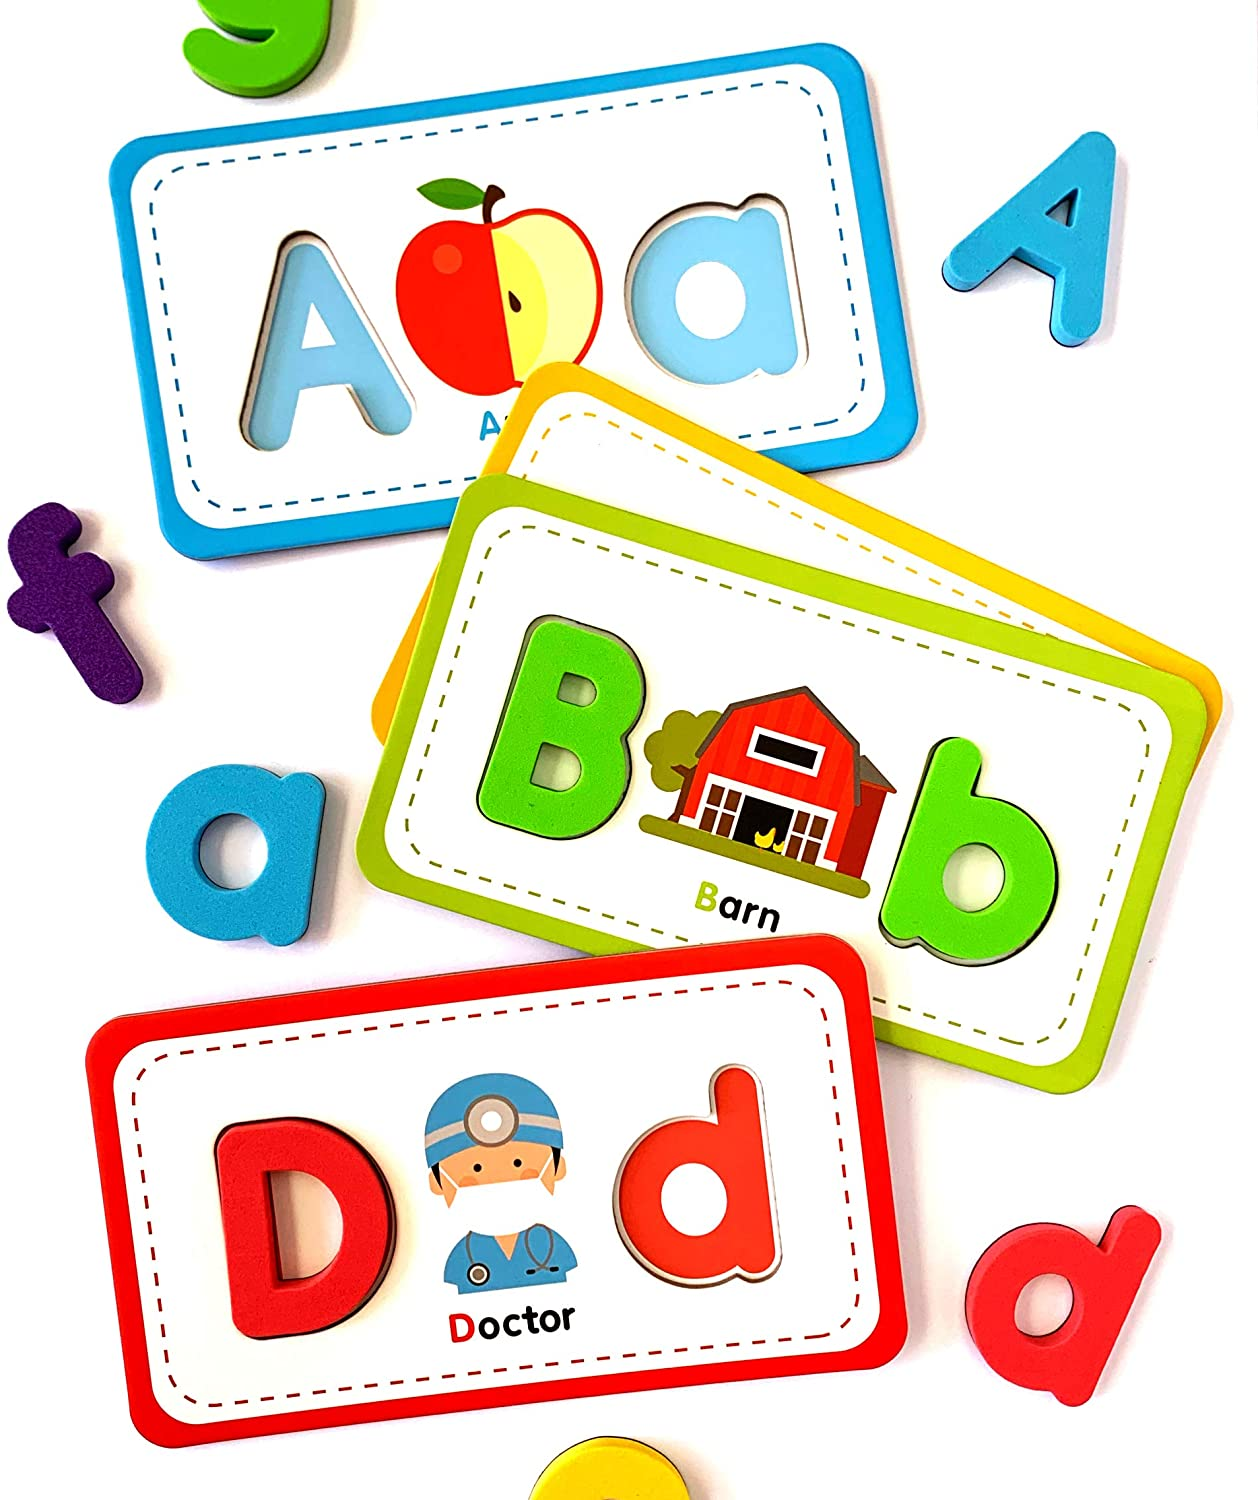 Curious Columbus Flashcards and Foam Letter Set. 26 Alphabet Flash Cards with 78 Magnetic Letters. ABC Toddler Games to Learn to Read, Spell and Practice Phonics.